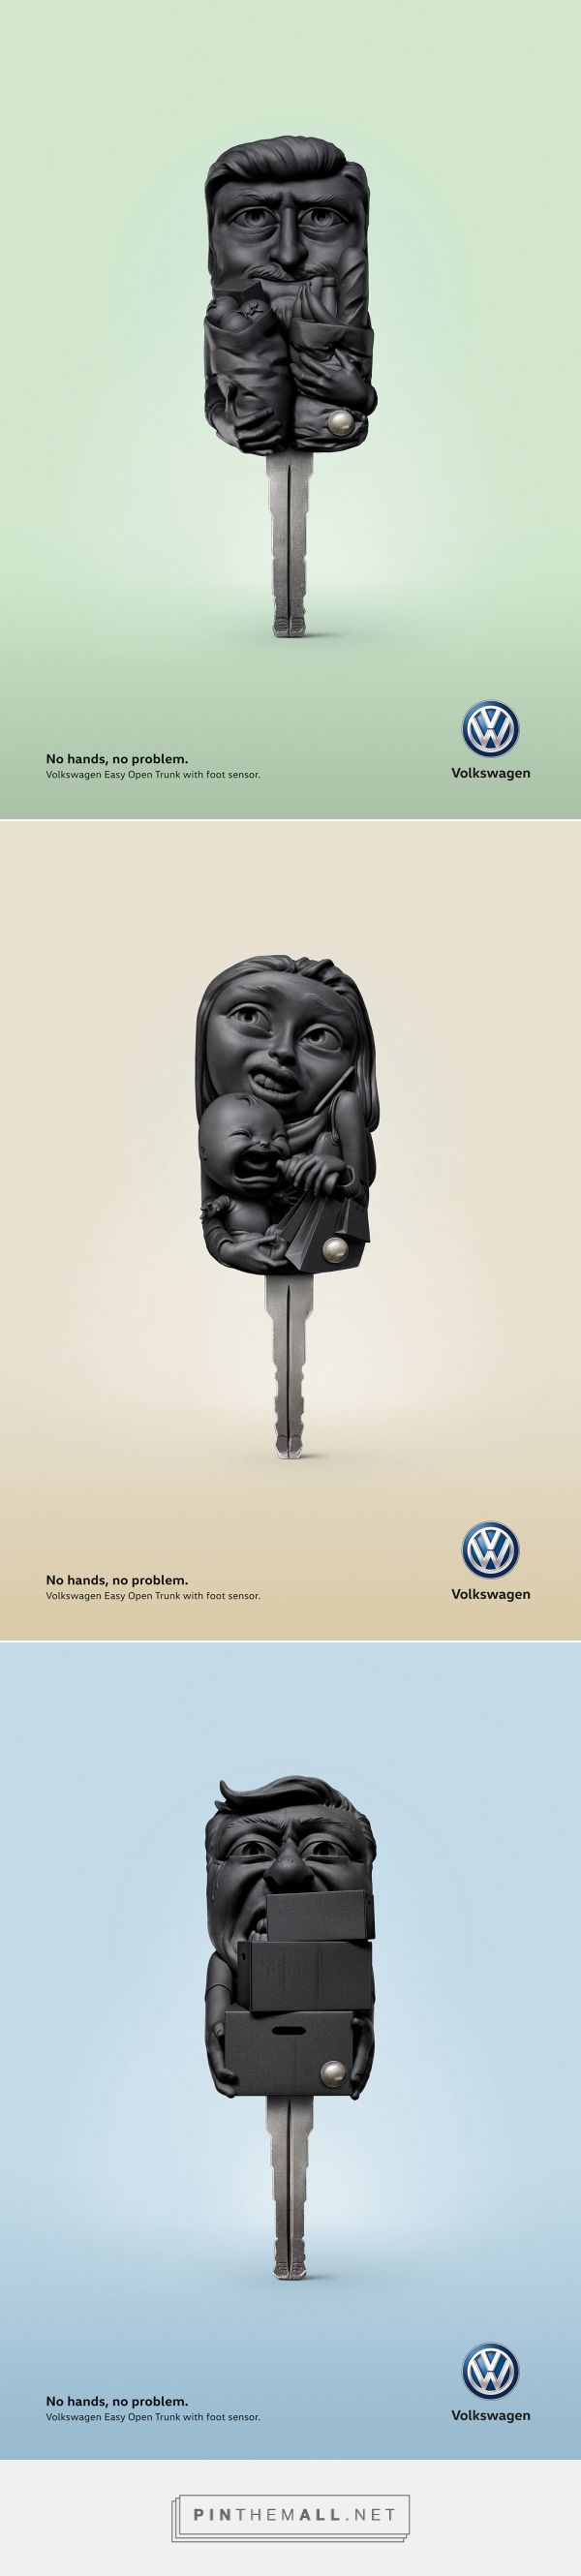 DDB Berlin on Behance... - a grouped images picture - Pin Them All